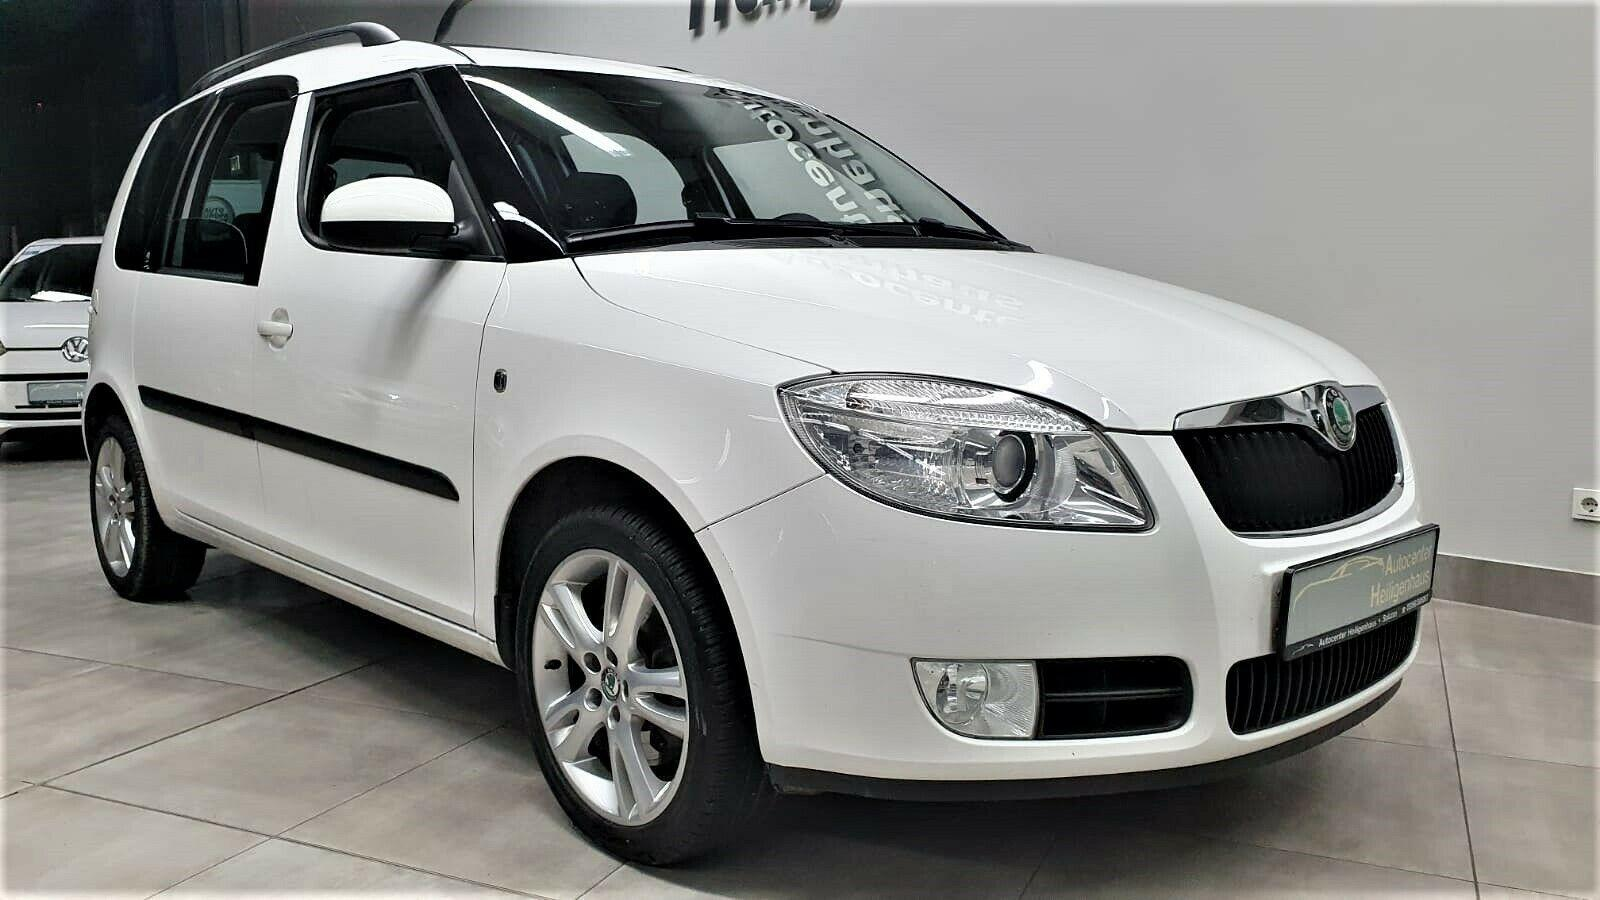 SKODA Roomster 1.6 Comfort Plus Edition Autom Pano PDC